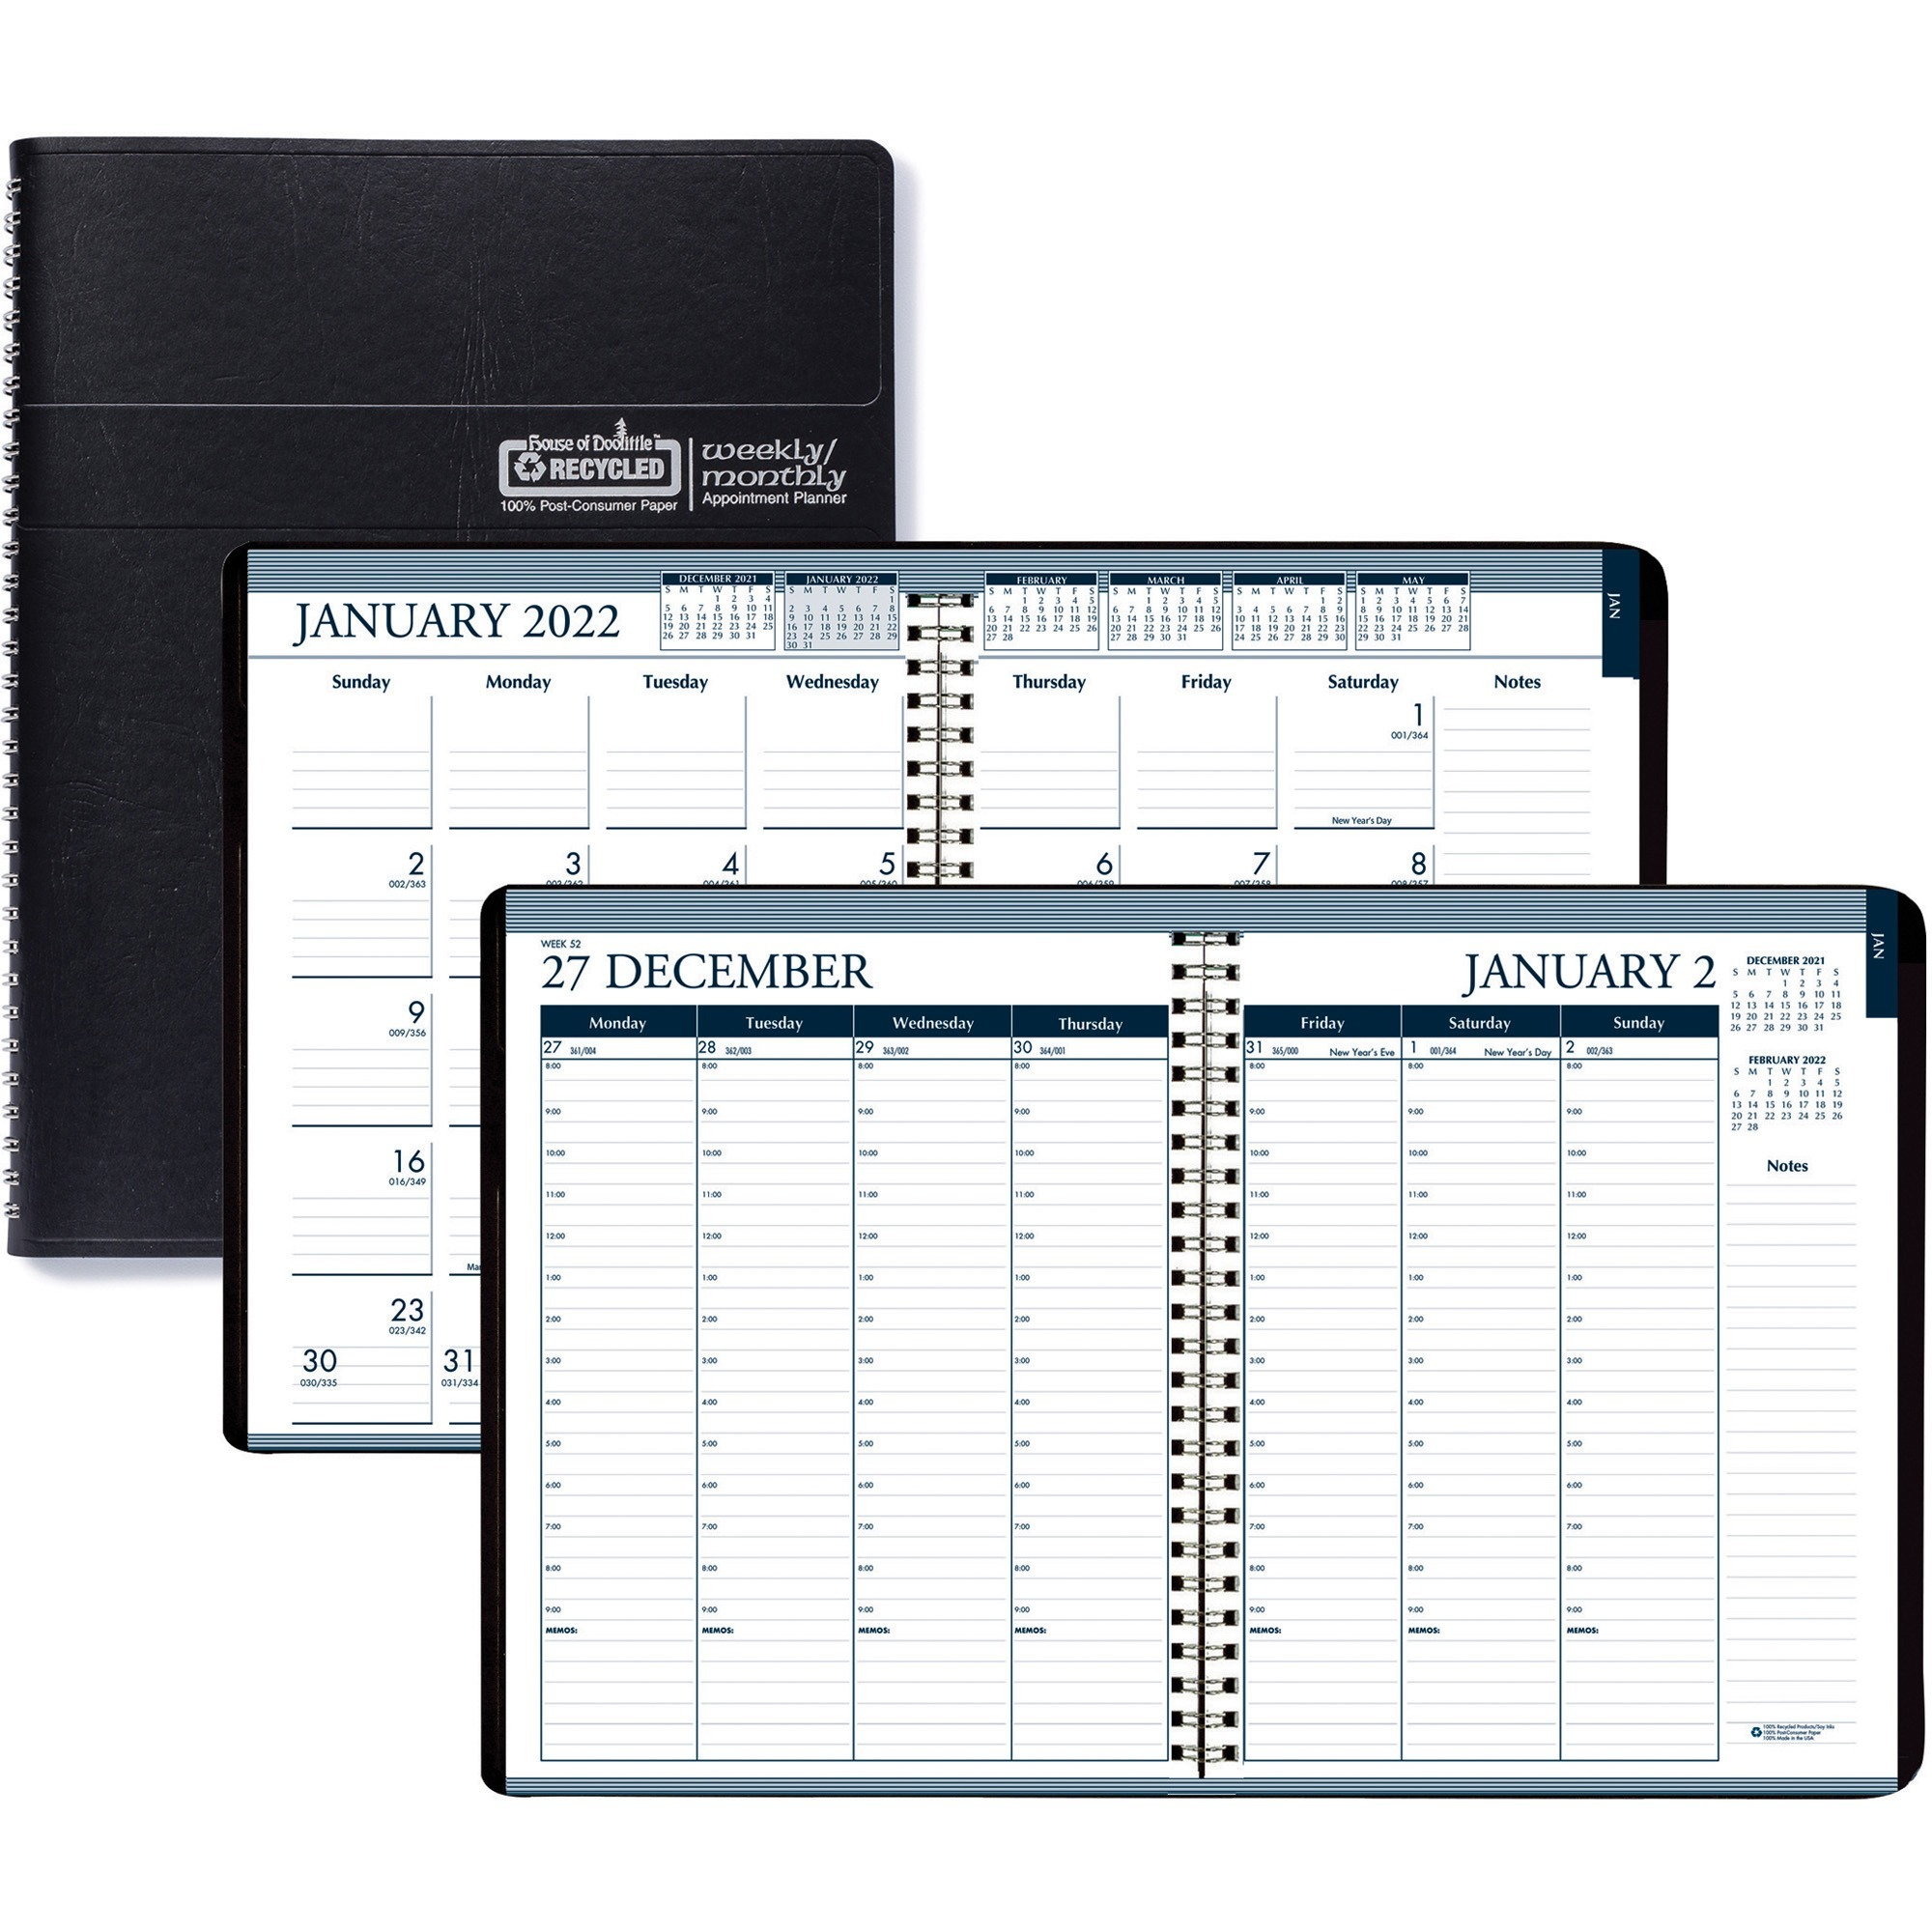 House of Doolittle Tabbed Wirebound Weekly/Monthly Planner - Yes - Weekly, Monthly, Daily - 1 Year - January 2020 till December 2020 - 8:00 AM to 8:30 PM - 1 Week, 1 Month Double Page Layout - 8 1/2